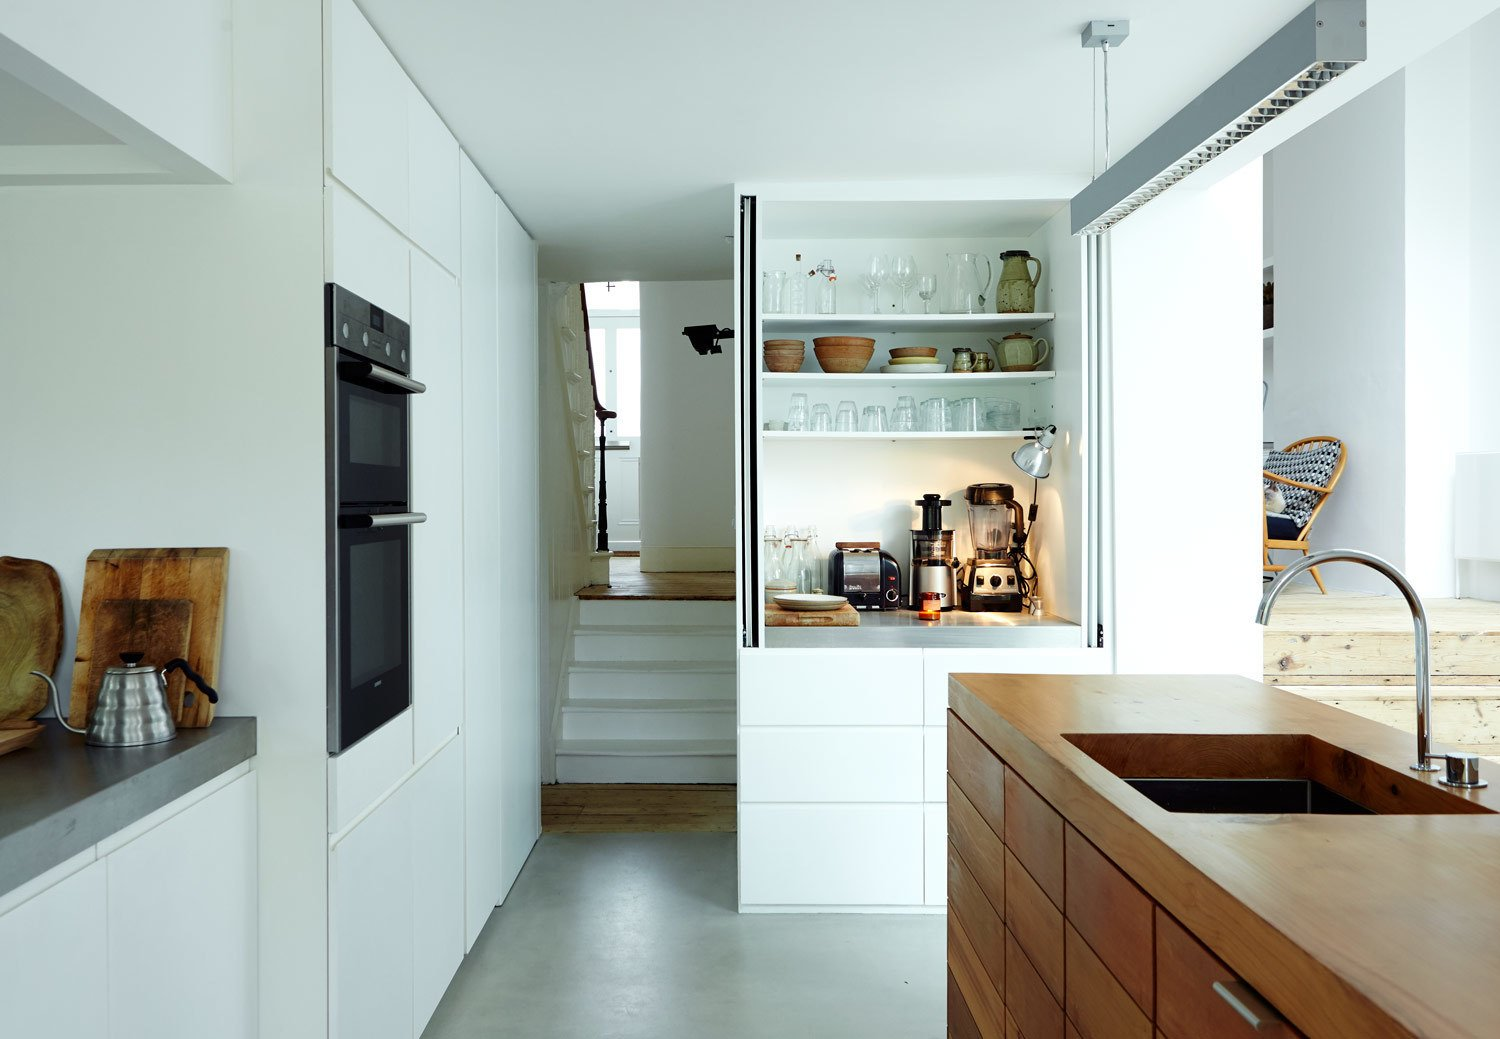 Photo 3 of 9 in This Kitchen Is as Cozy as Your Favorite Coffee Shop ...